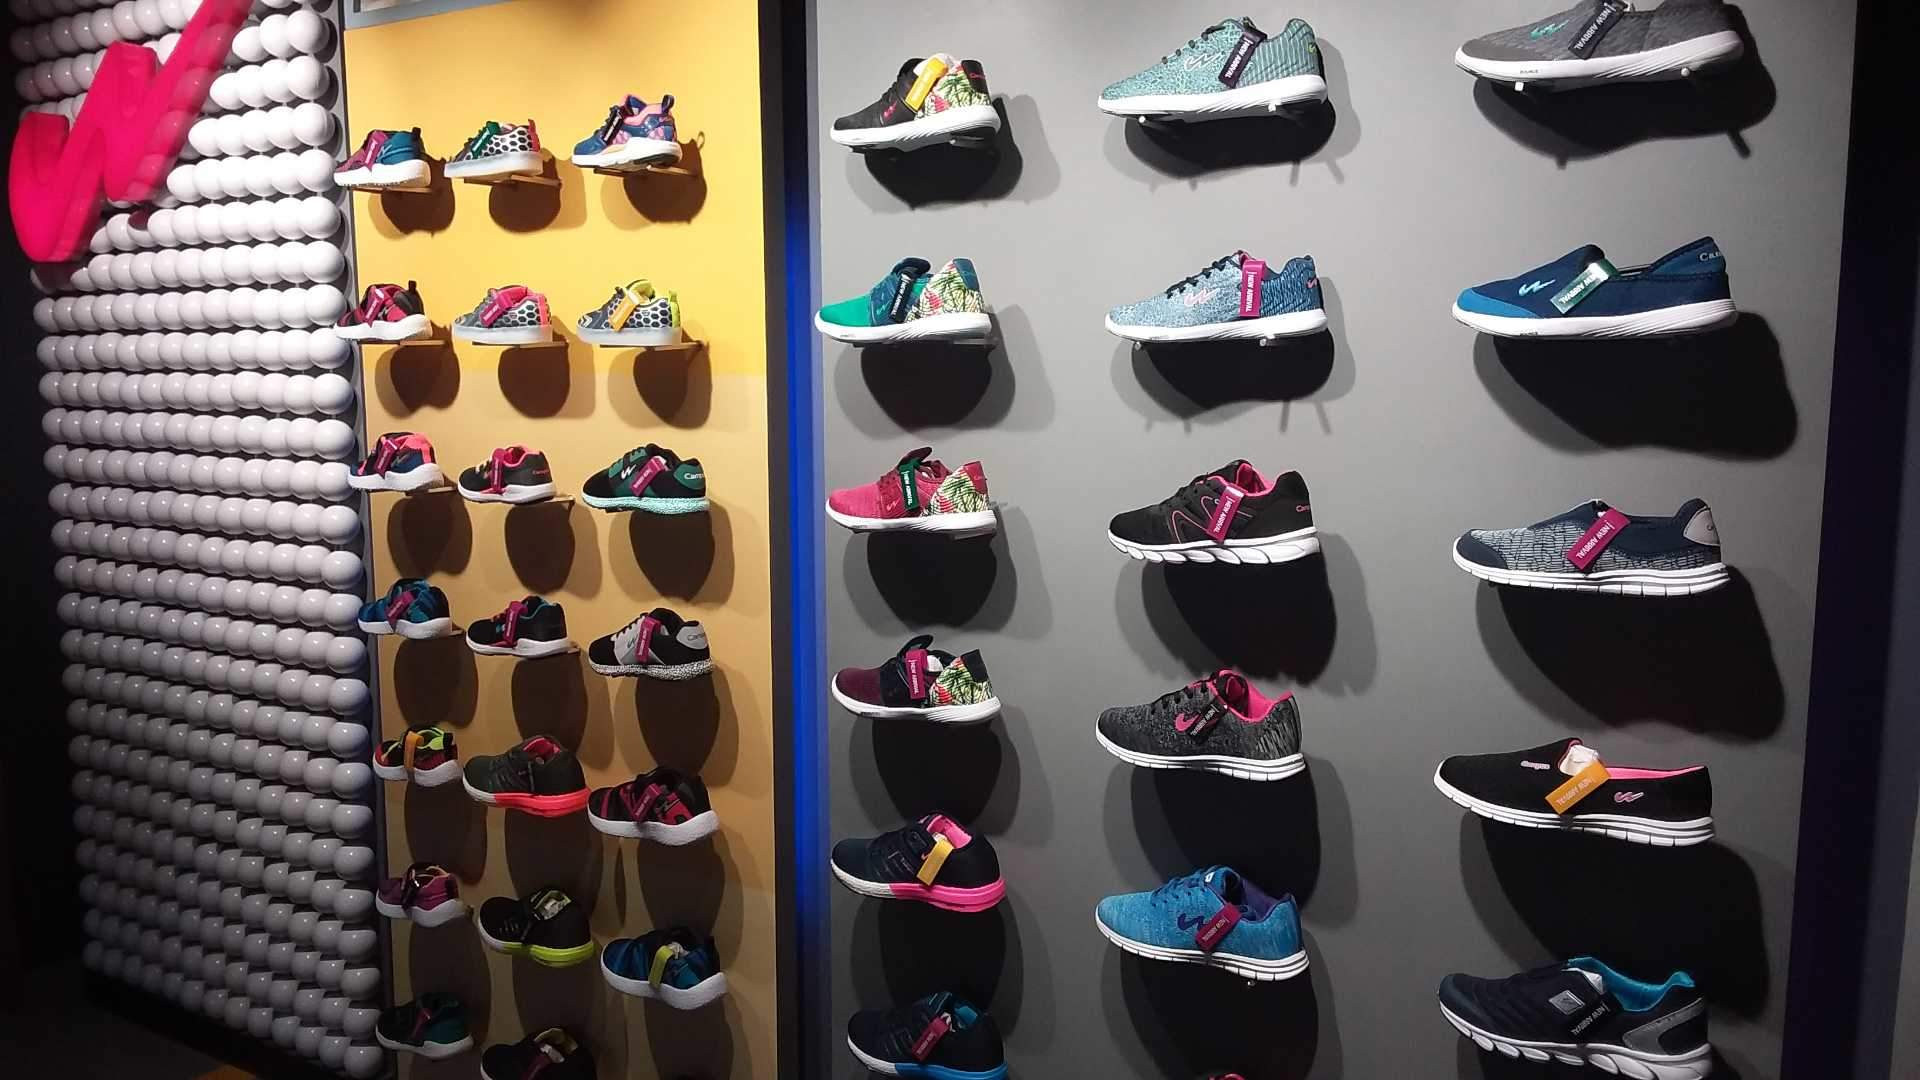 Groenlandia deseable cráter  adidas showroom near me,Free Shipping,OFF60%,ID=5